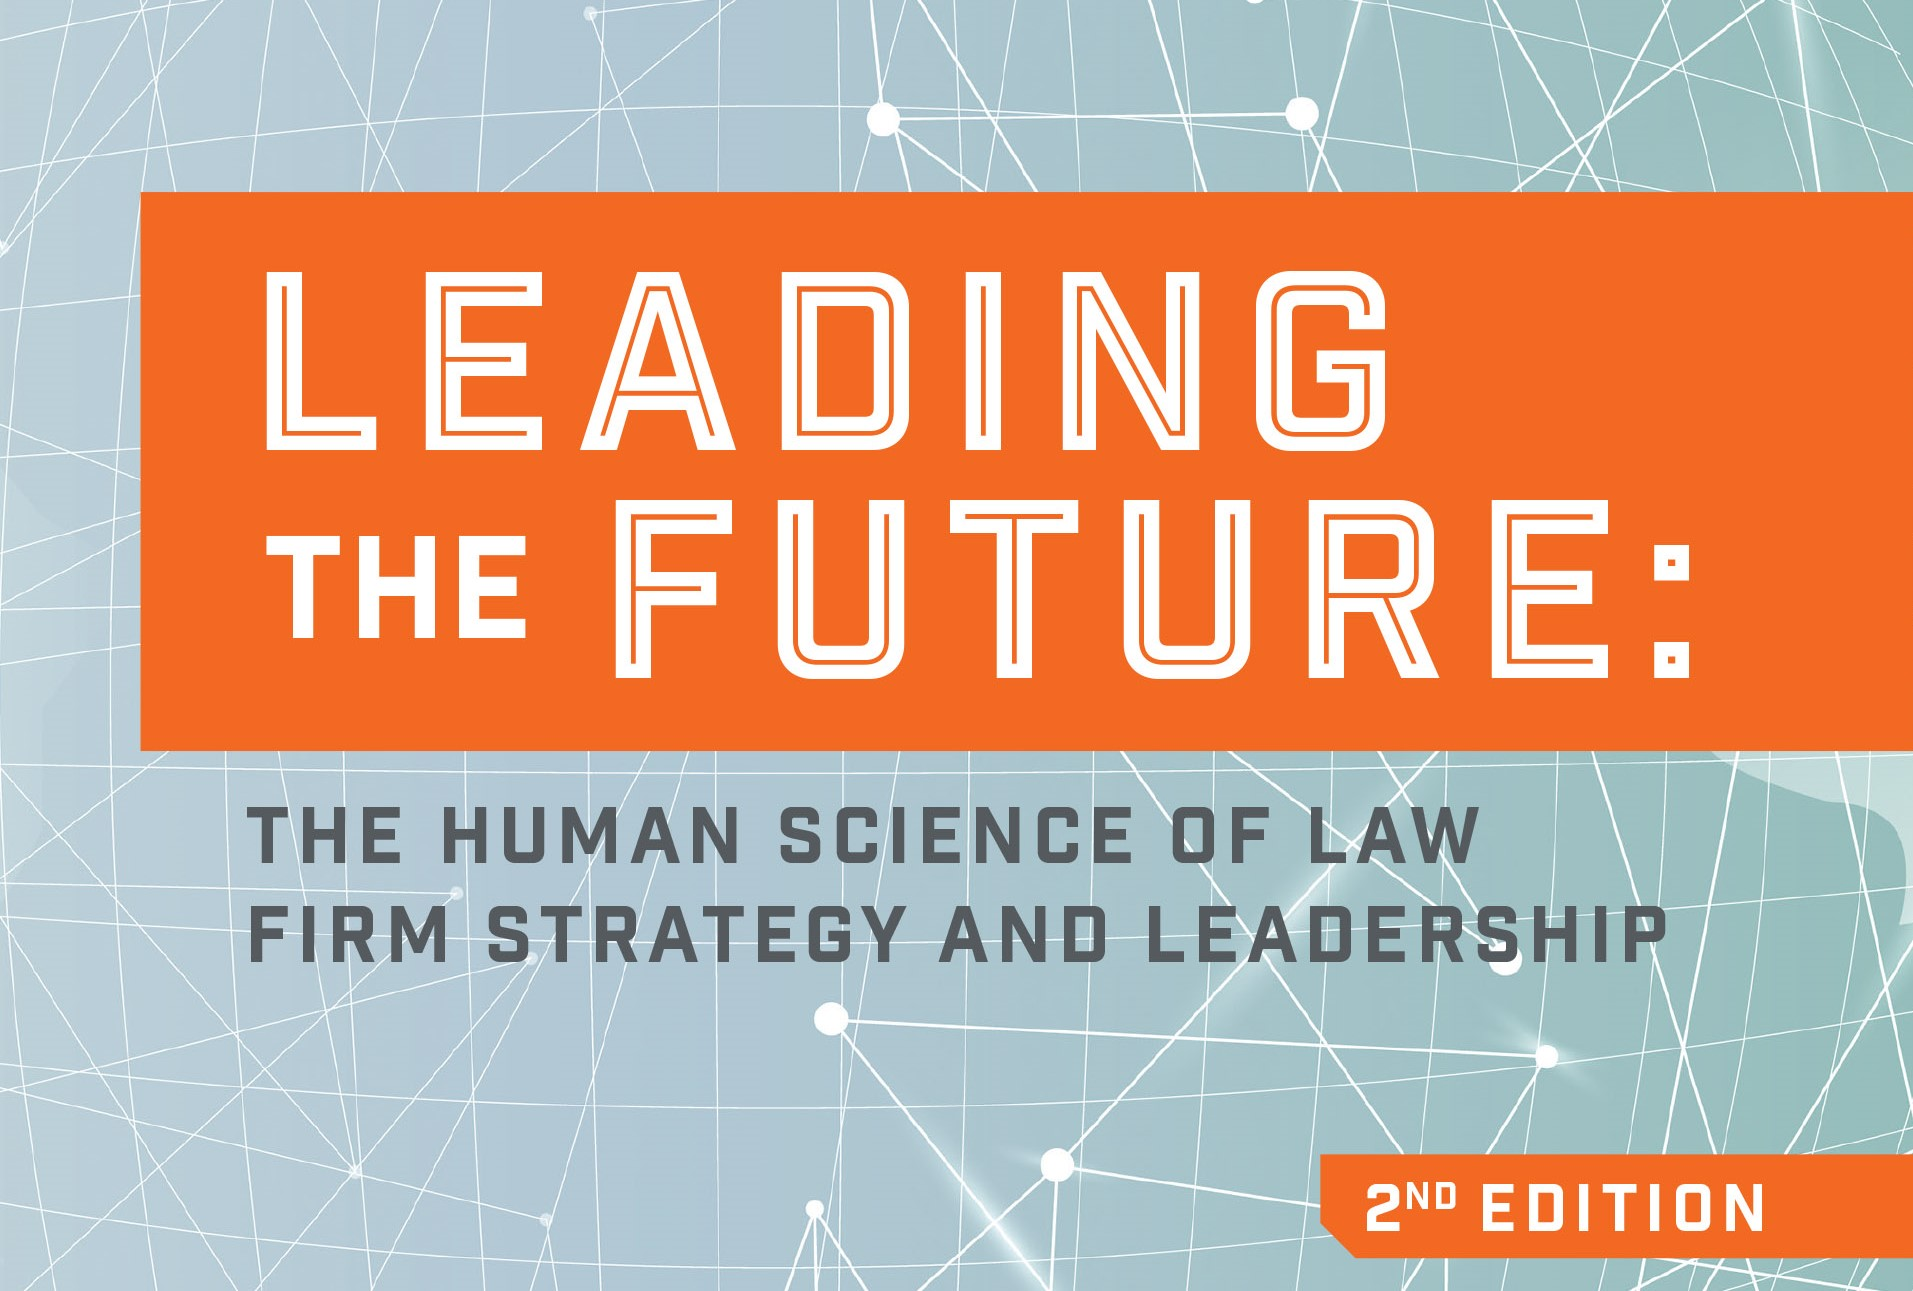 Leading the Future: The Human Science of Law Firm Strategy and Leadership (2nd edition)